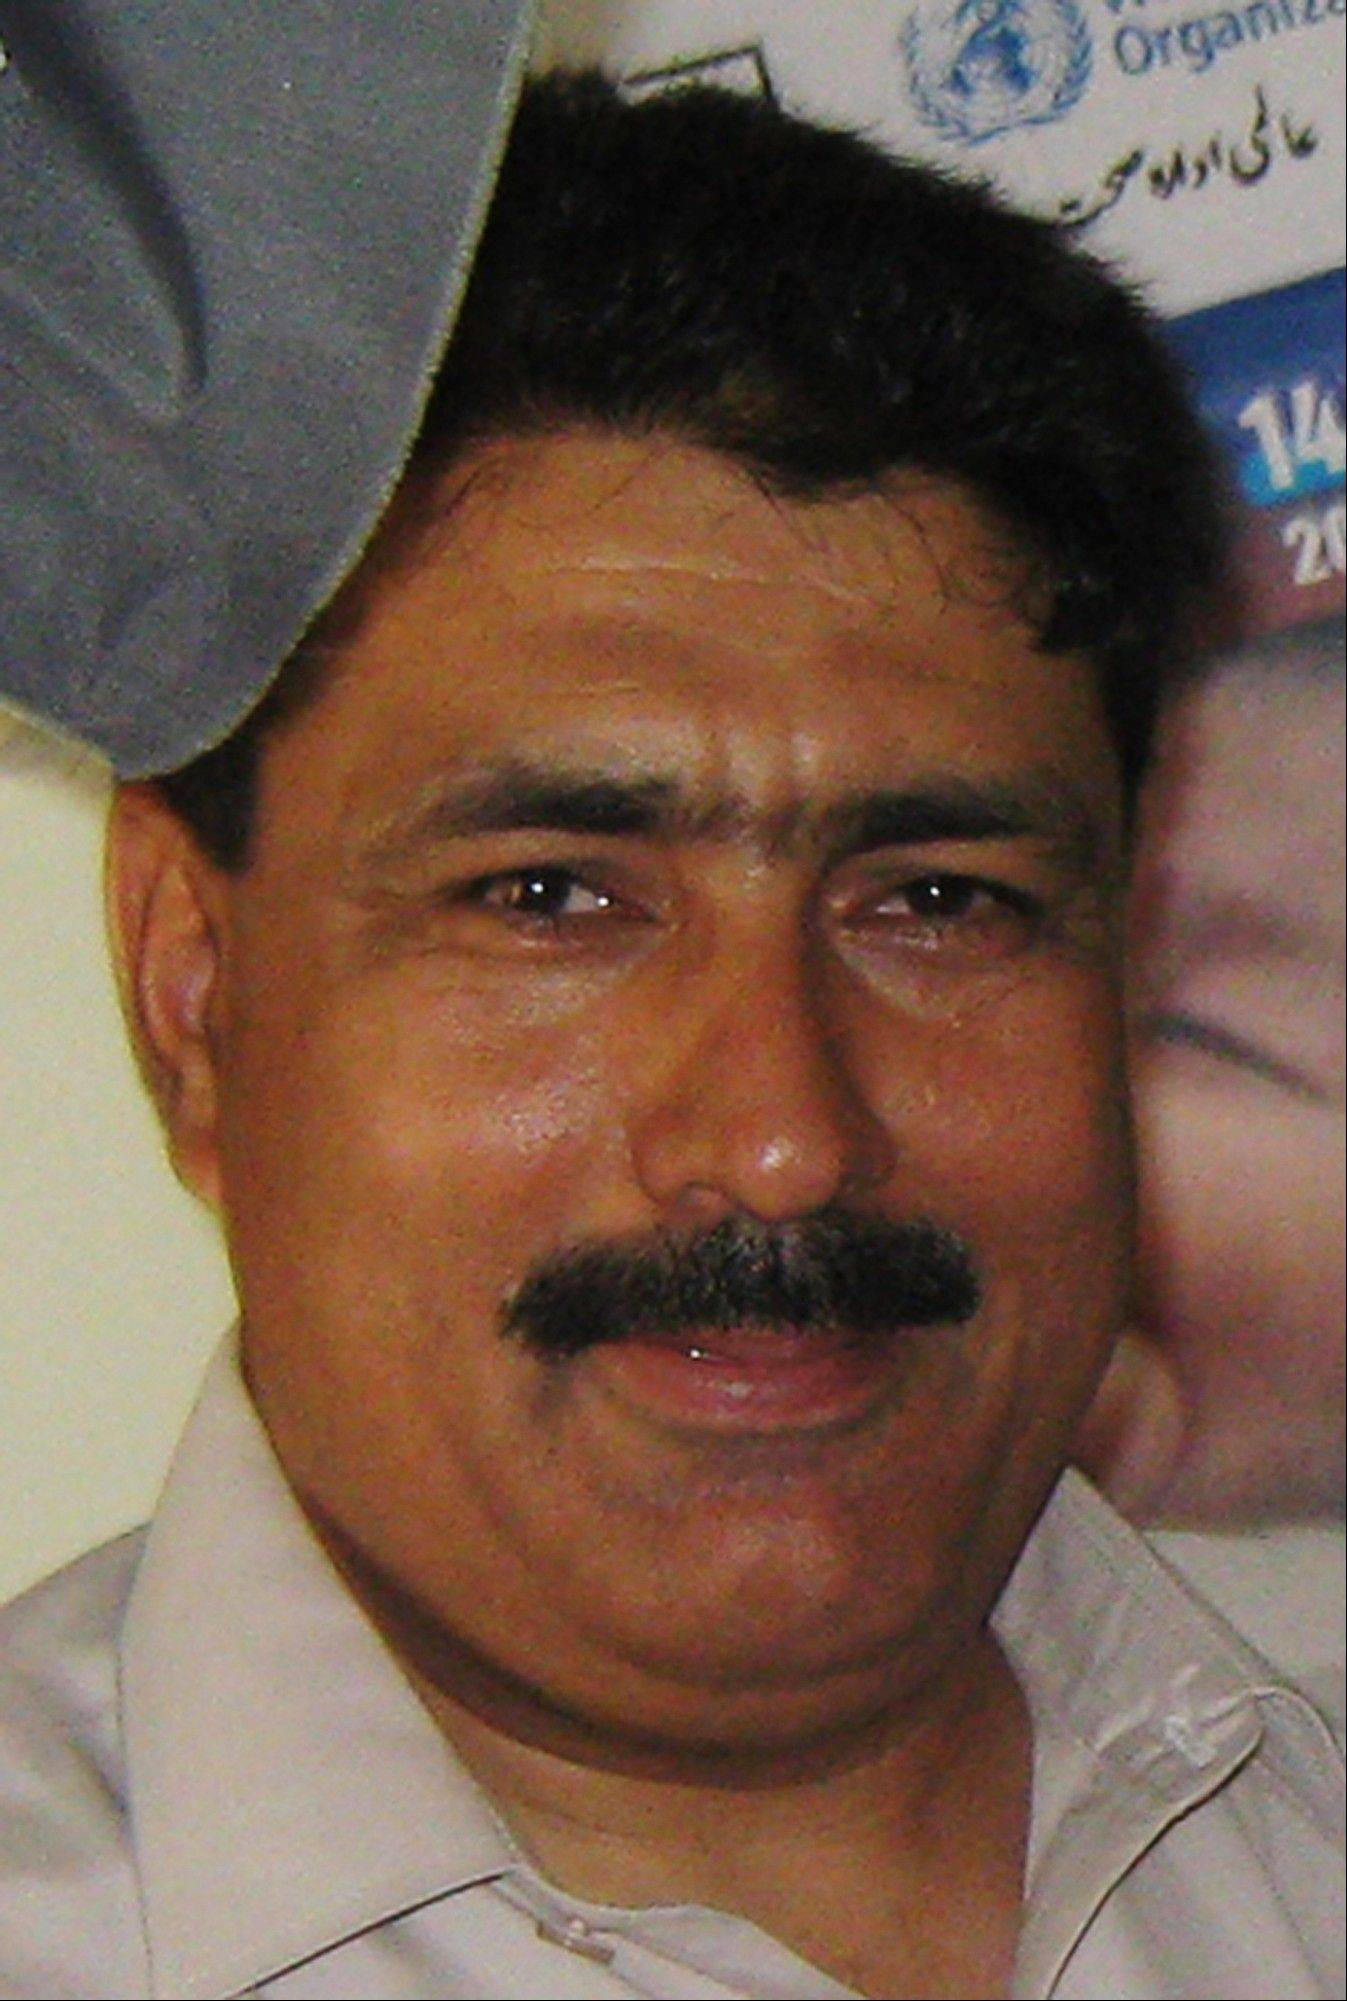 Pakistani doctor Shakil Afridi in Pakistan's tribal area of Jamrud in Khyber region.